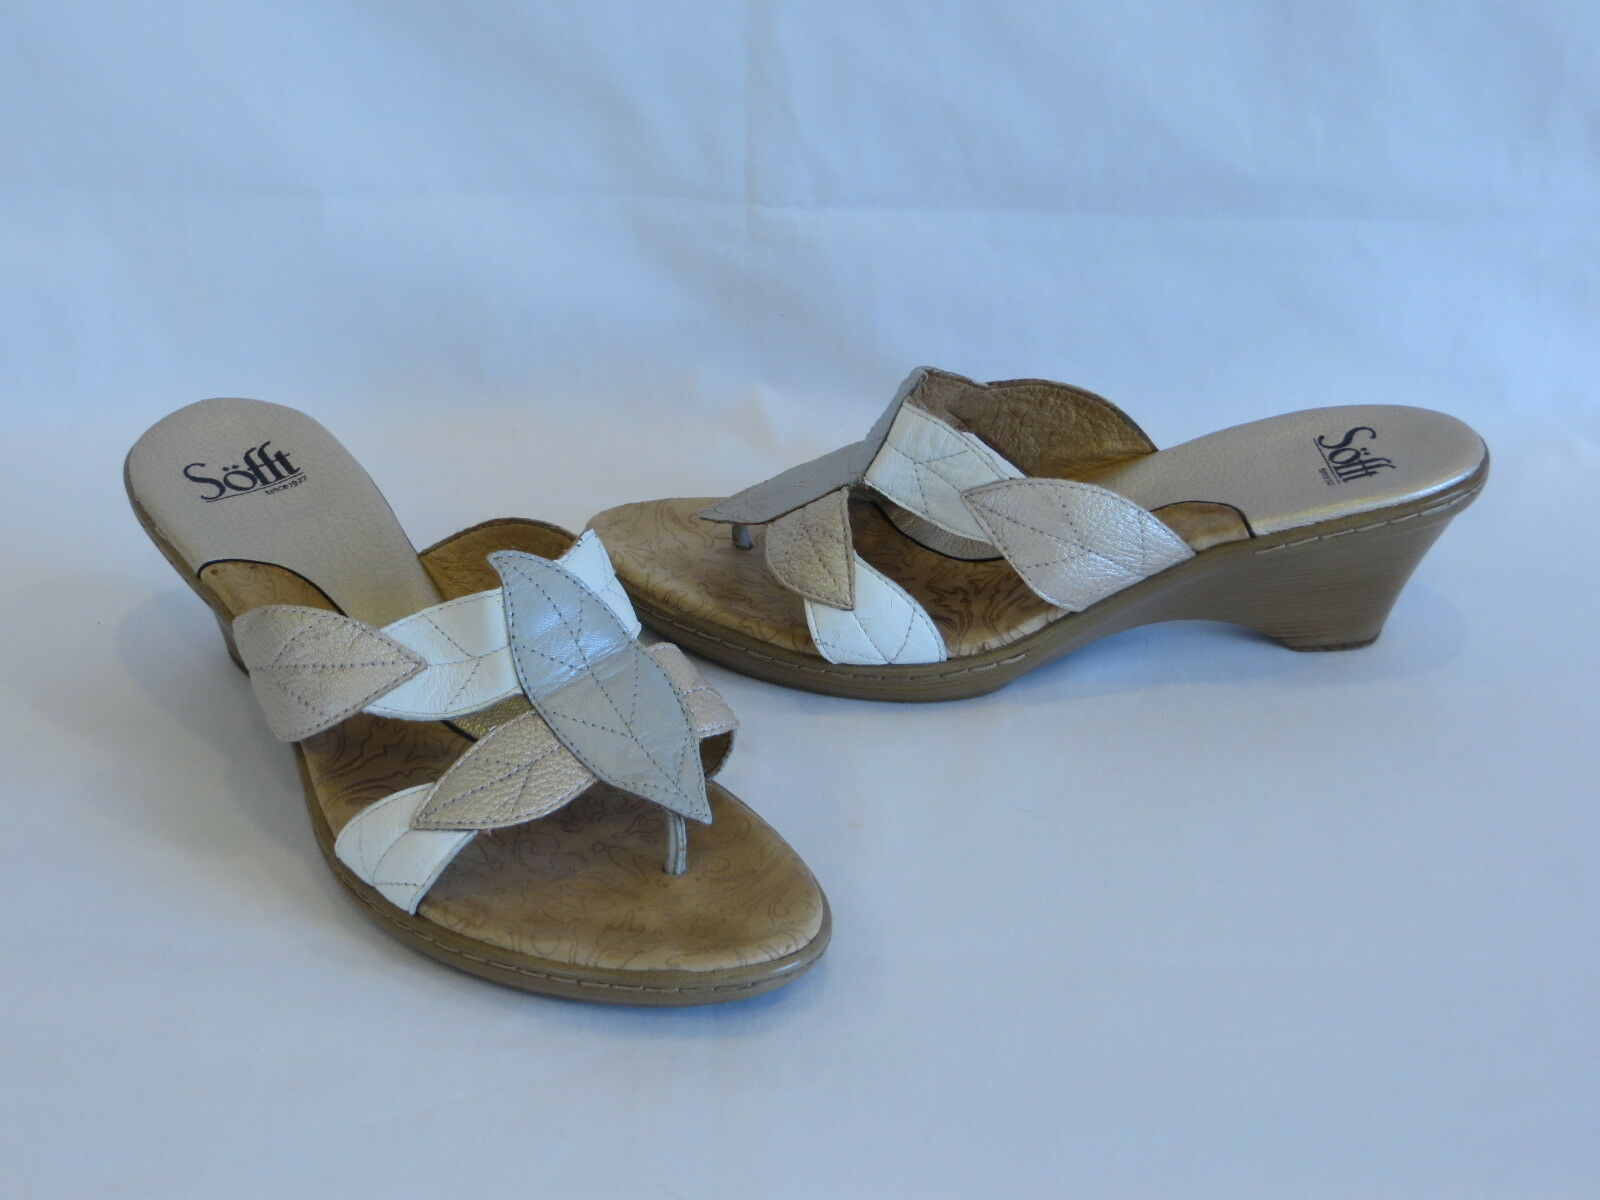 Sofft Silver/White/Champagne Leather Wedge Heels/Thongs/Slides - 9.5M – GR8!